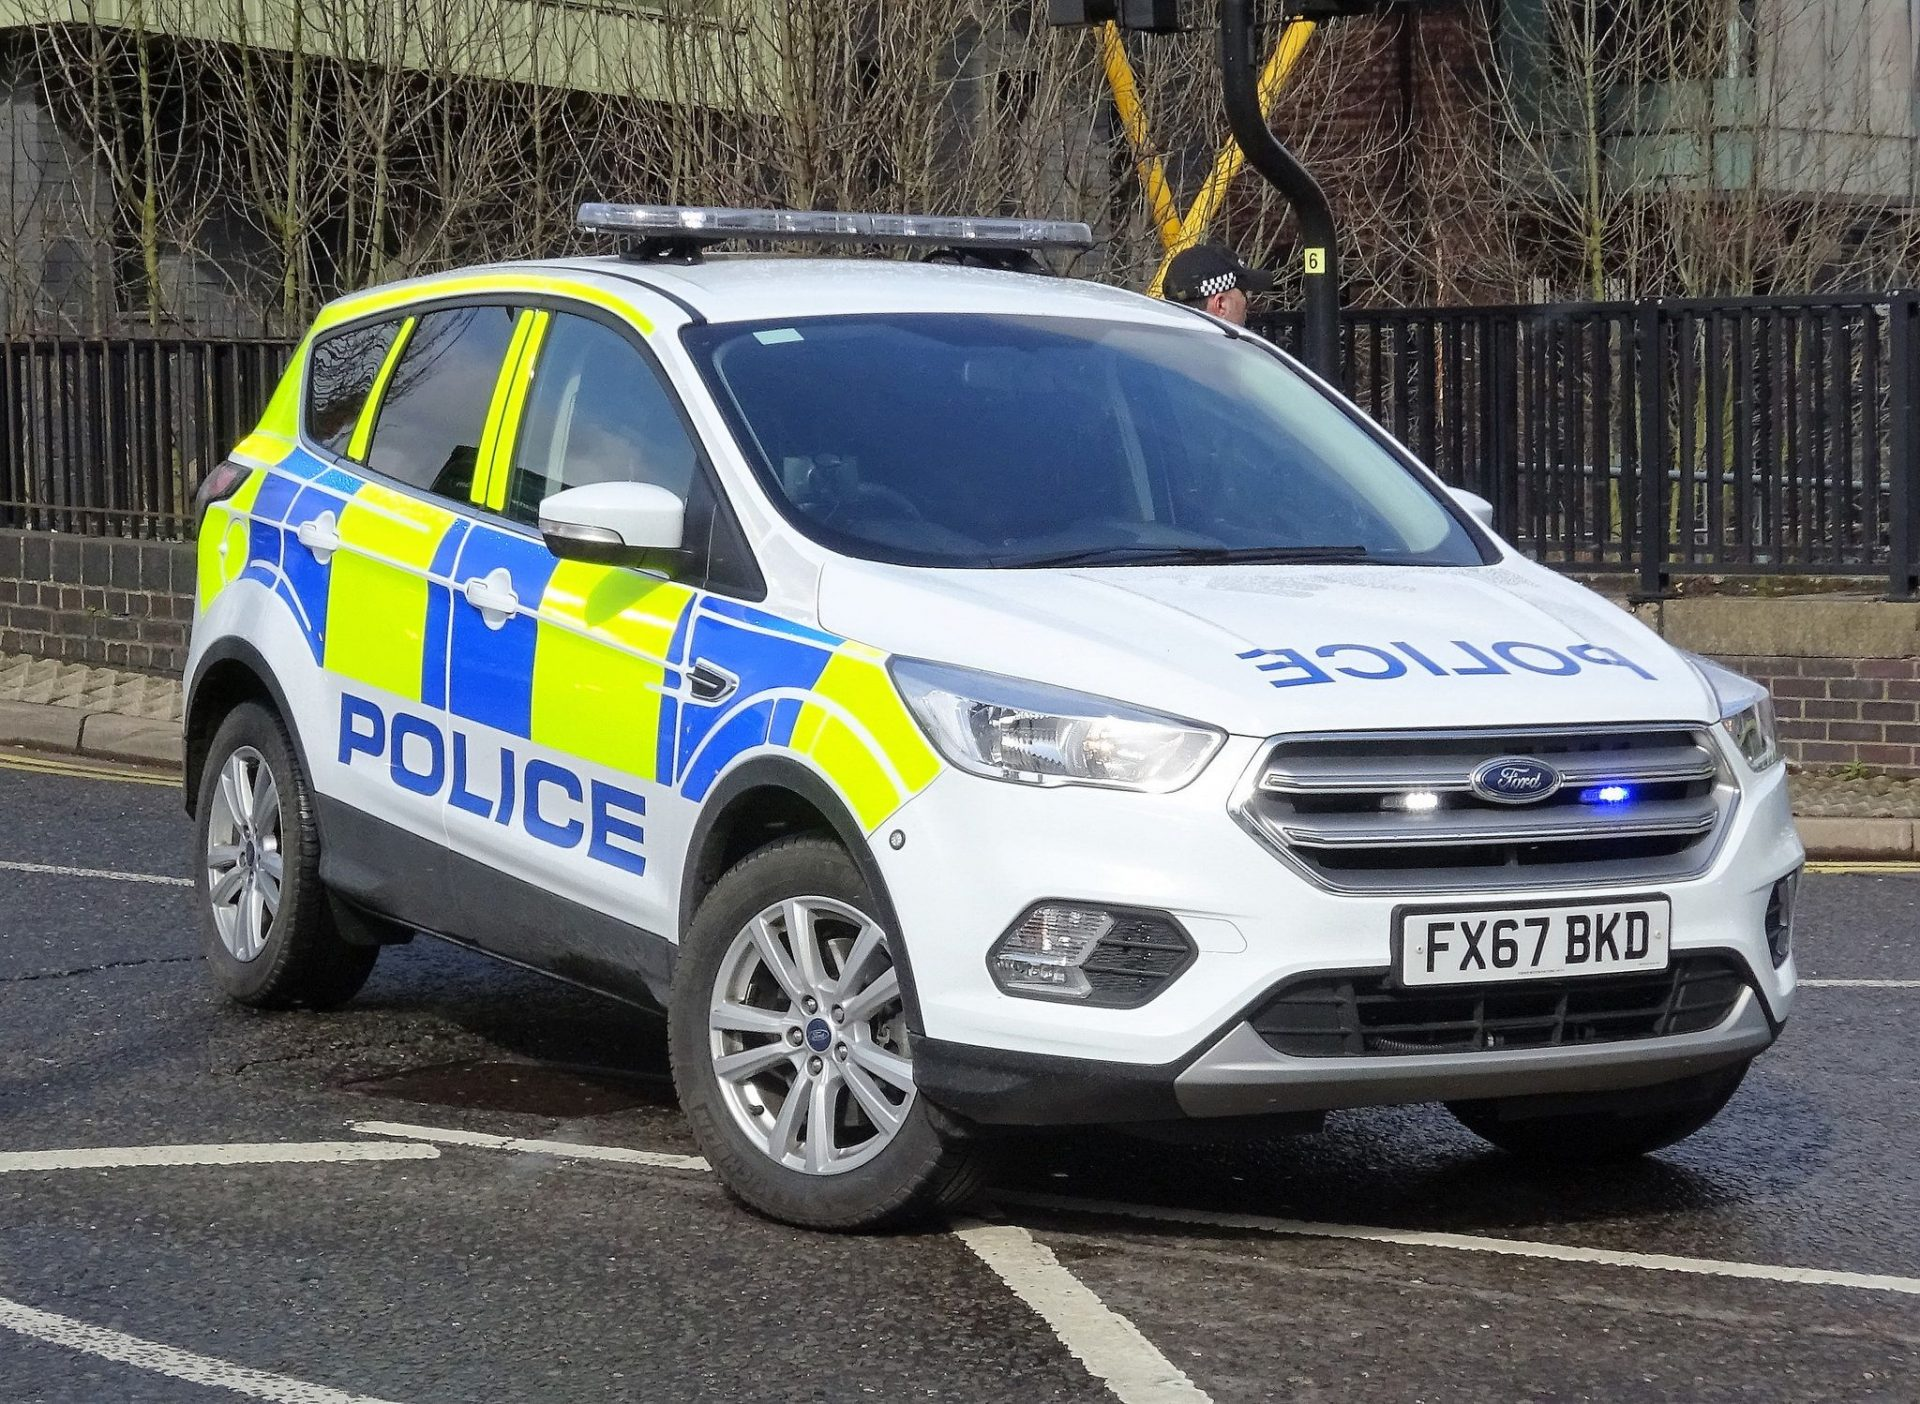 Lincolnshire mother fleeing domestic abuse caused chaos in police pursuit